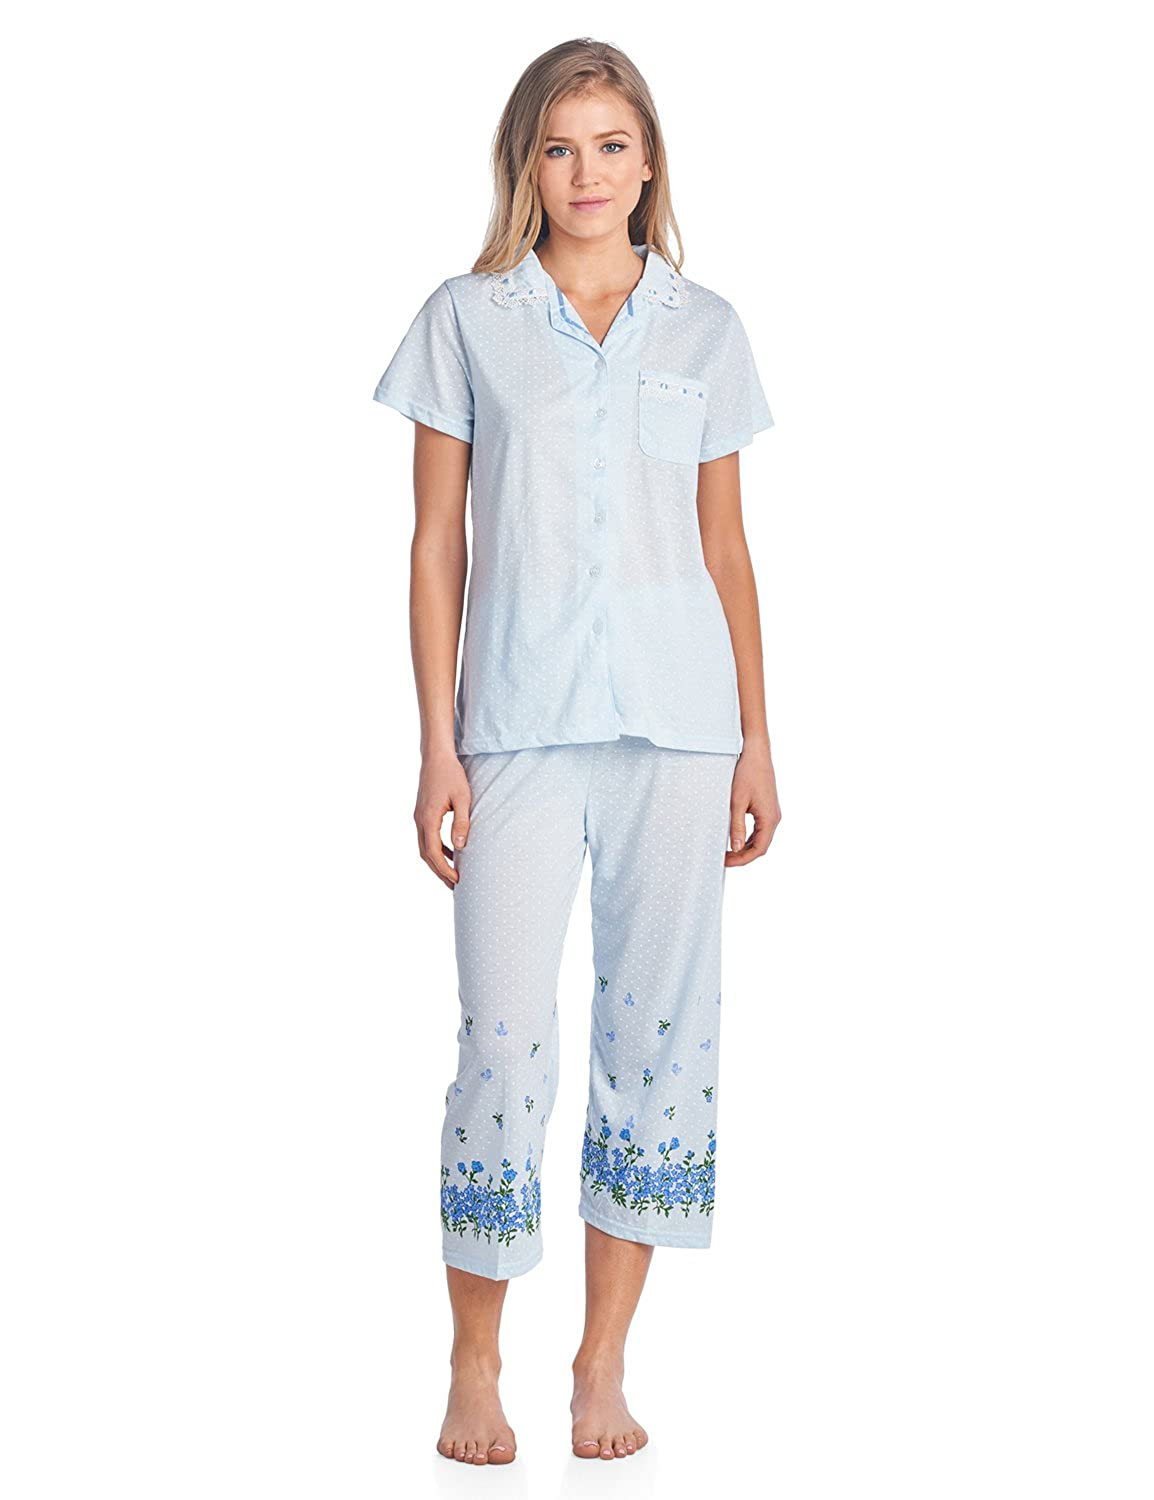 d3a967a1f54 Casual Nights Lace Trim Women s Short Sleeve Capri Pajama Set at Amazon  Women s Clothing store